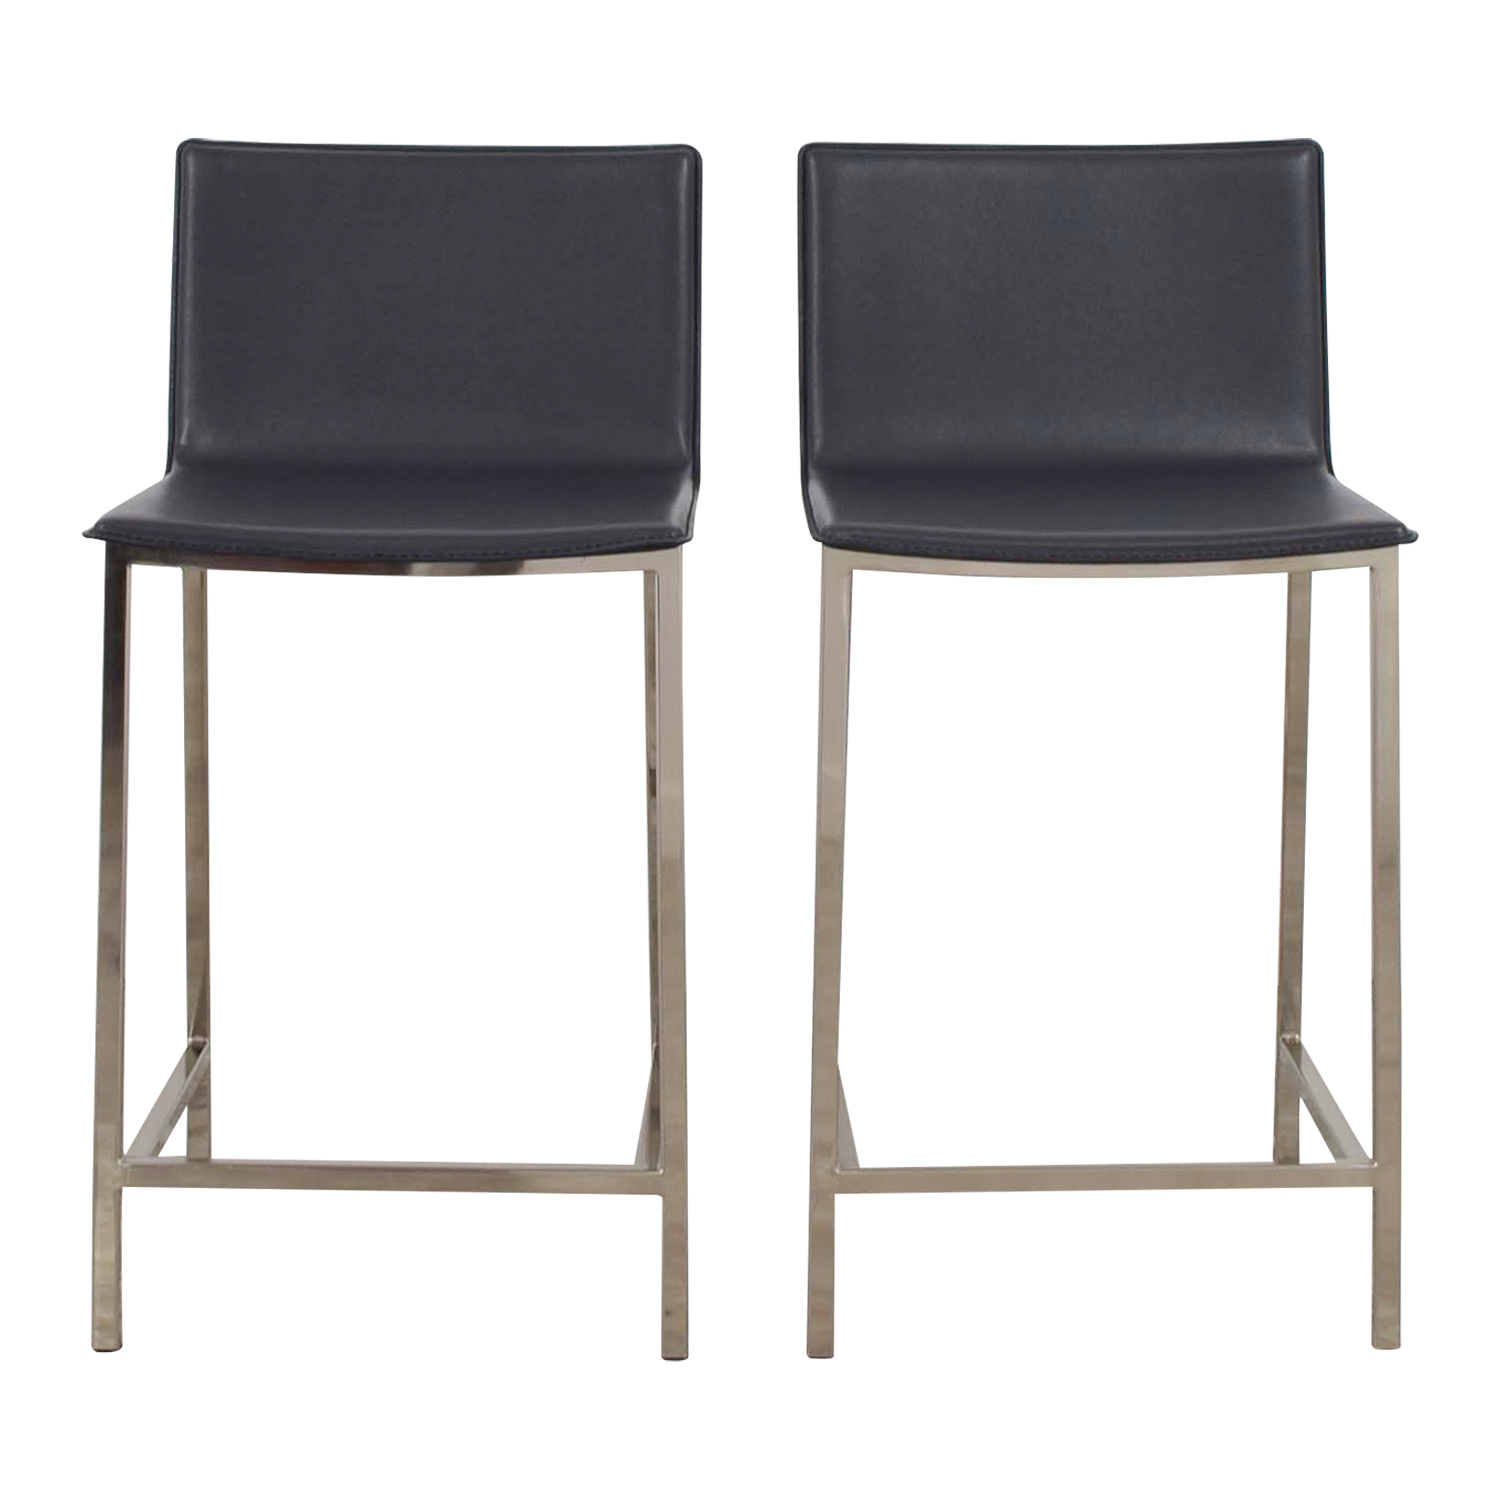 buy CB2 CB2 Grey Leather Bar Stools online ...  sc 1 st  Furnishare & 37% OFF - CB2 CB2 Grey Leather Bar Stools / Chairs islam-shia.org